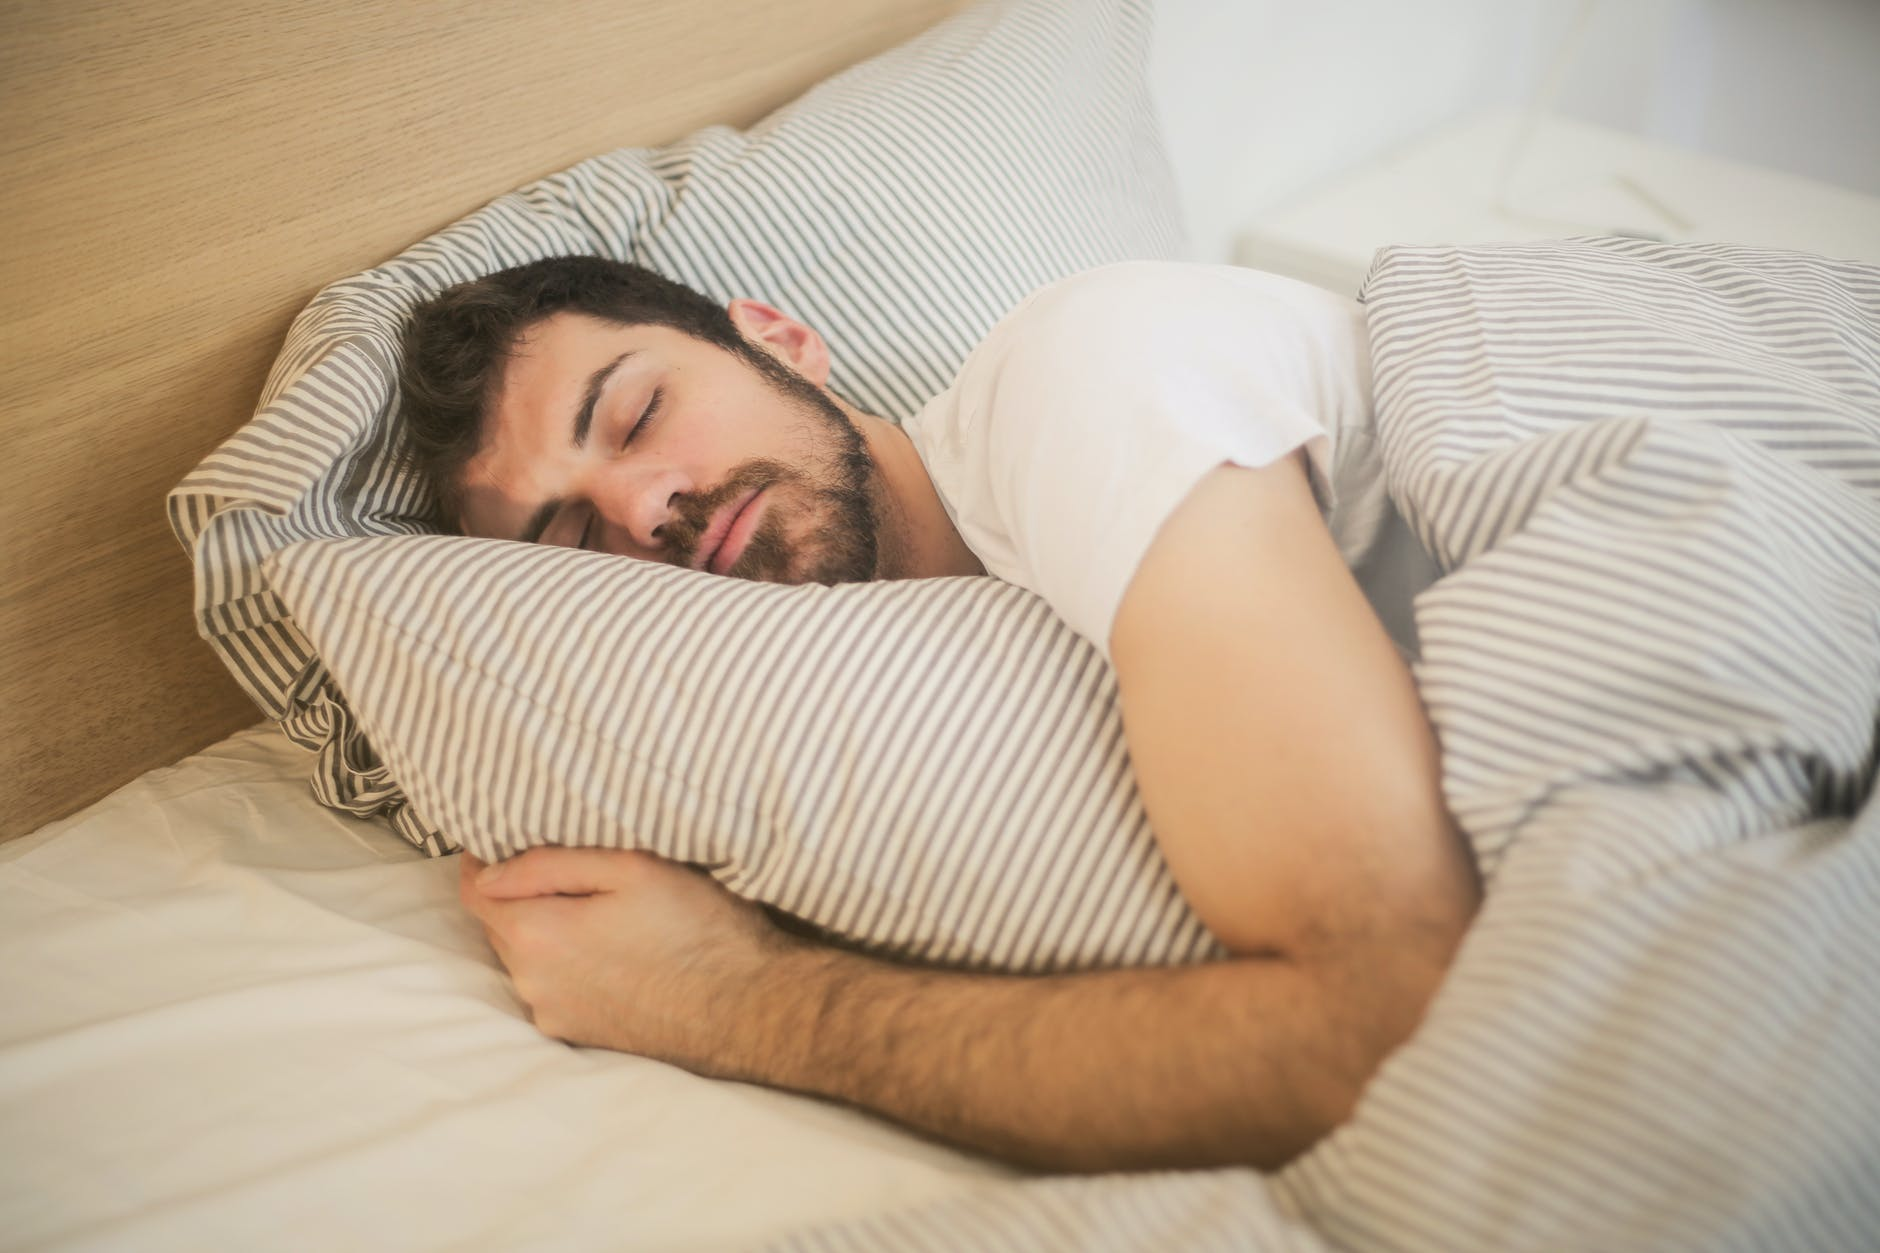 How to Sleep Better to Feel Fresh and Healthy Every Morning?